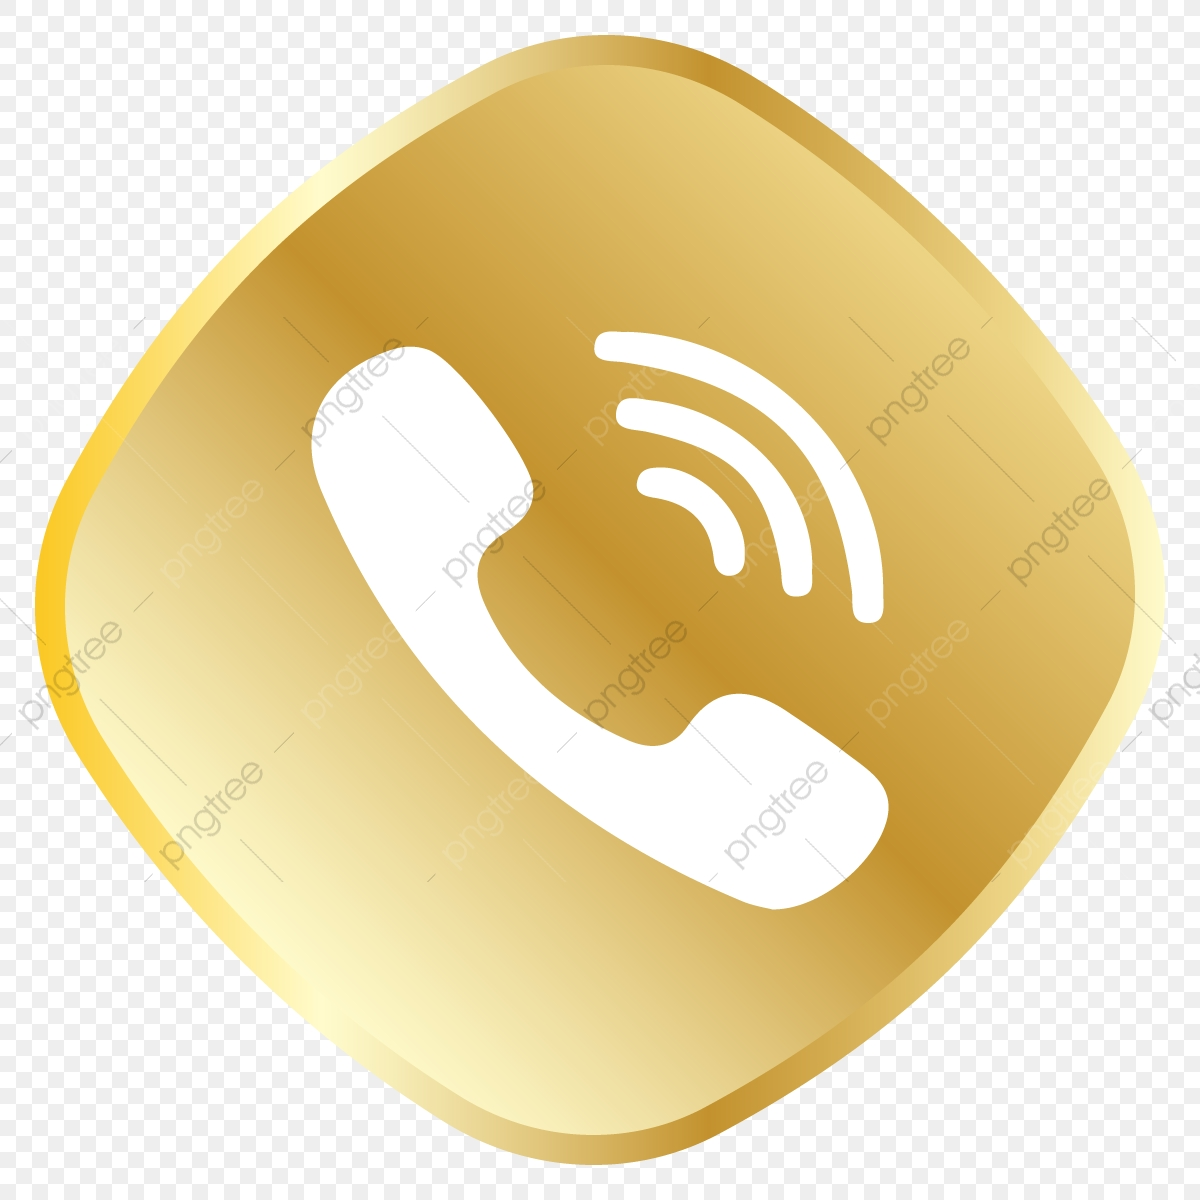 Golden Call Icon Whatsapp Logo, Whatsapp, Royal, Golden PNG and.